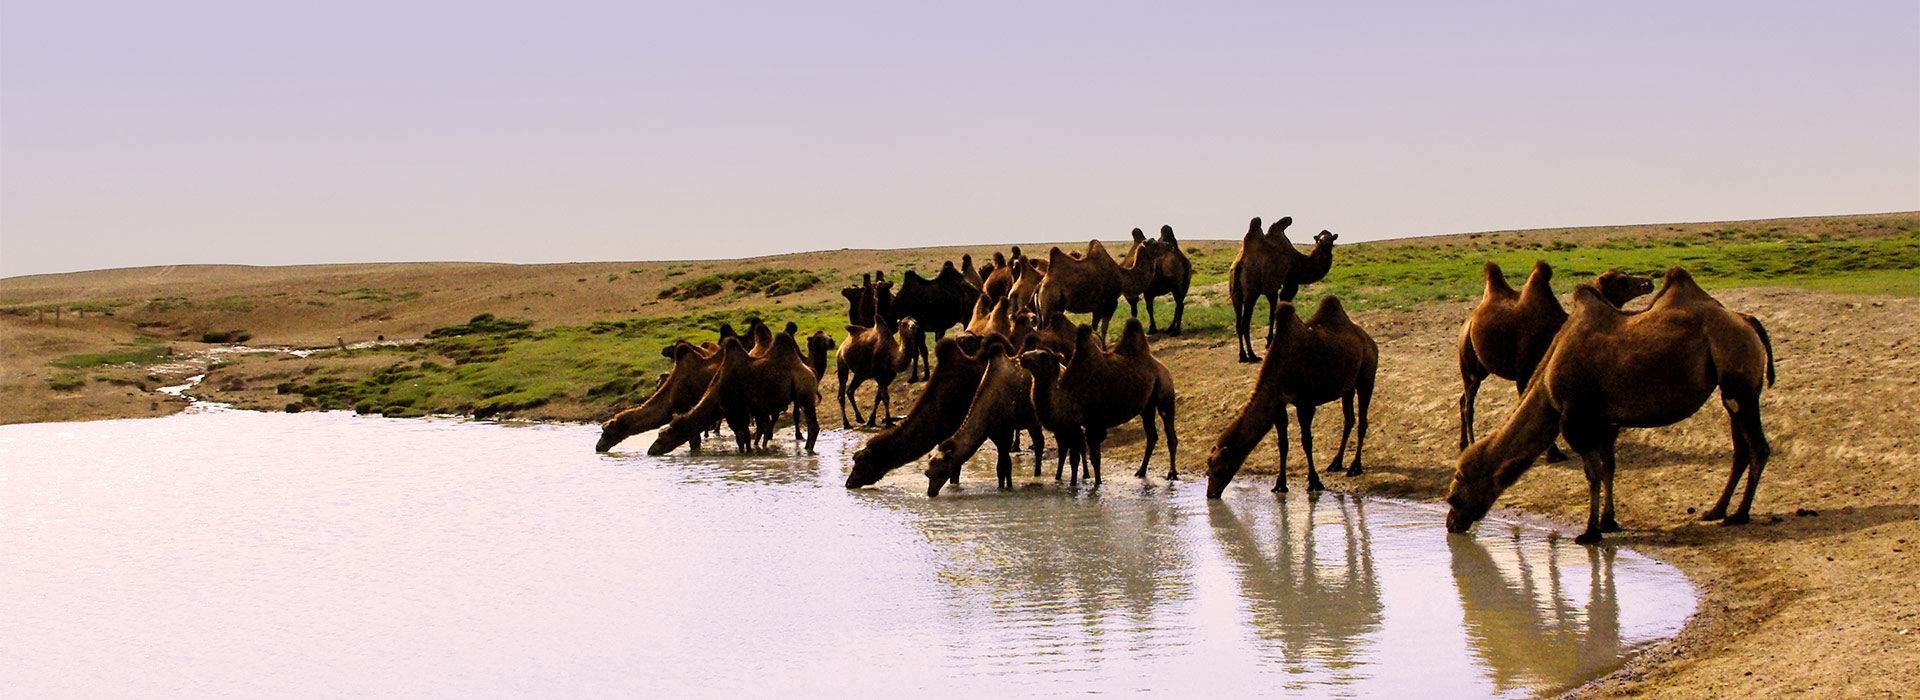 camel-drinking-water-in-south-gobi